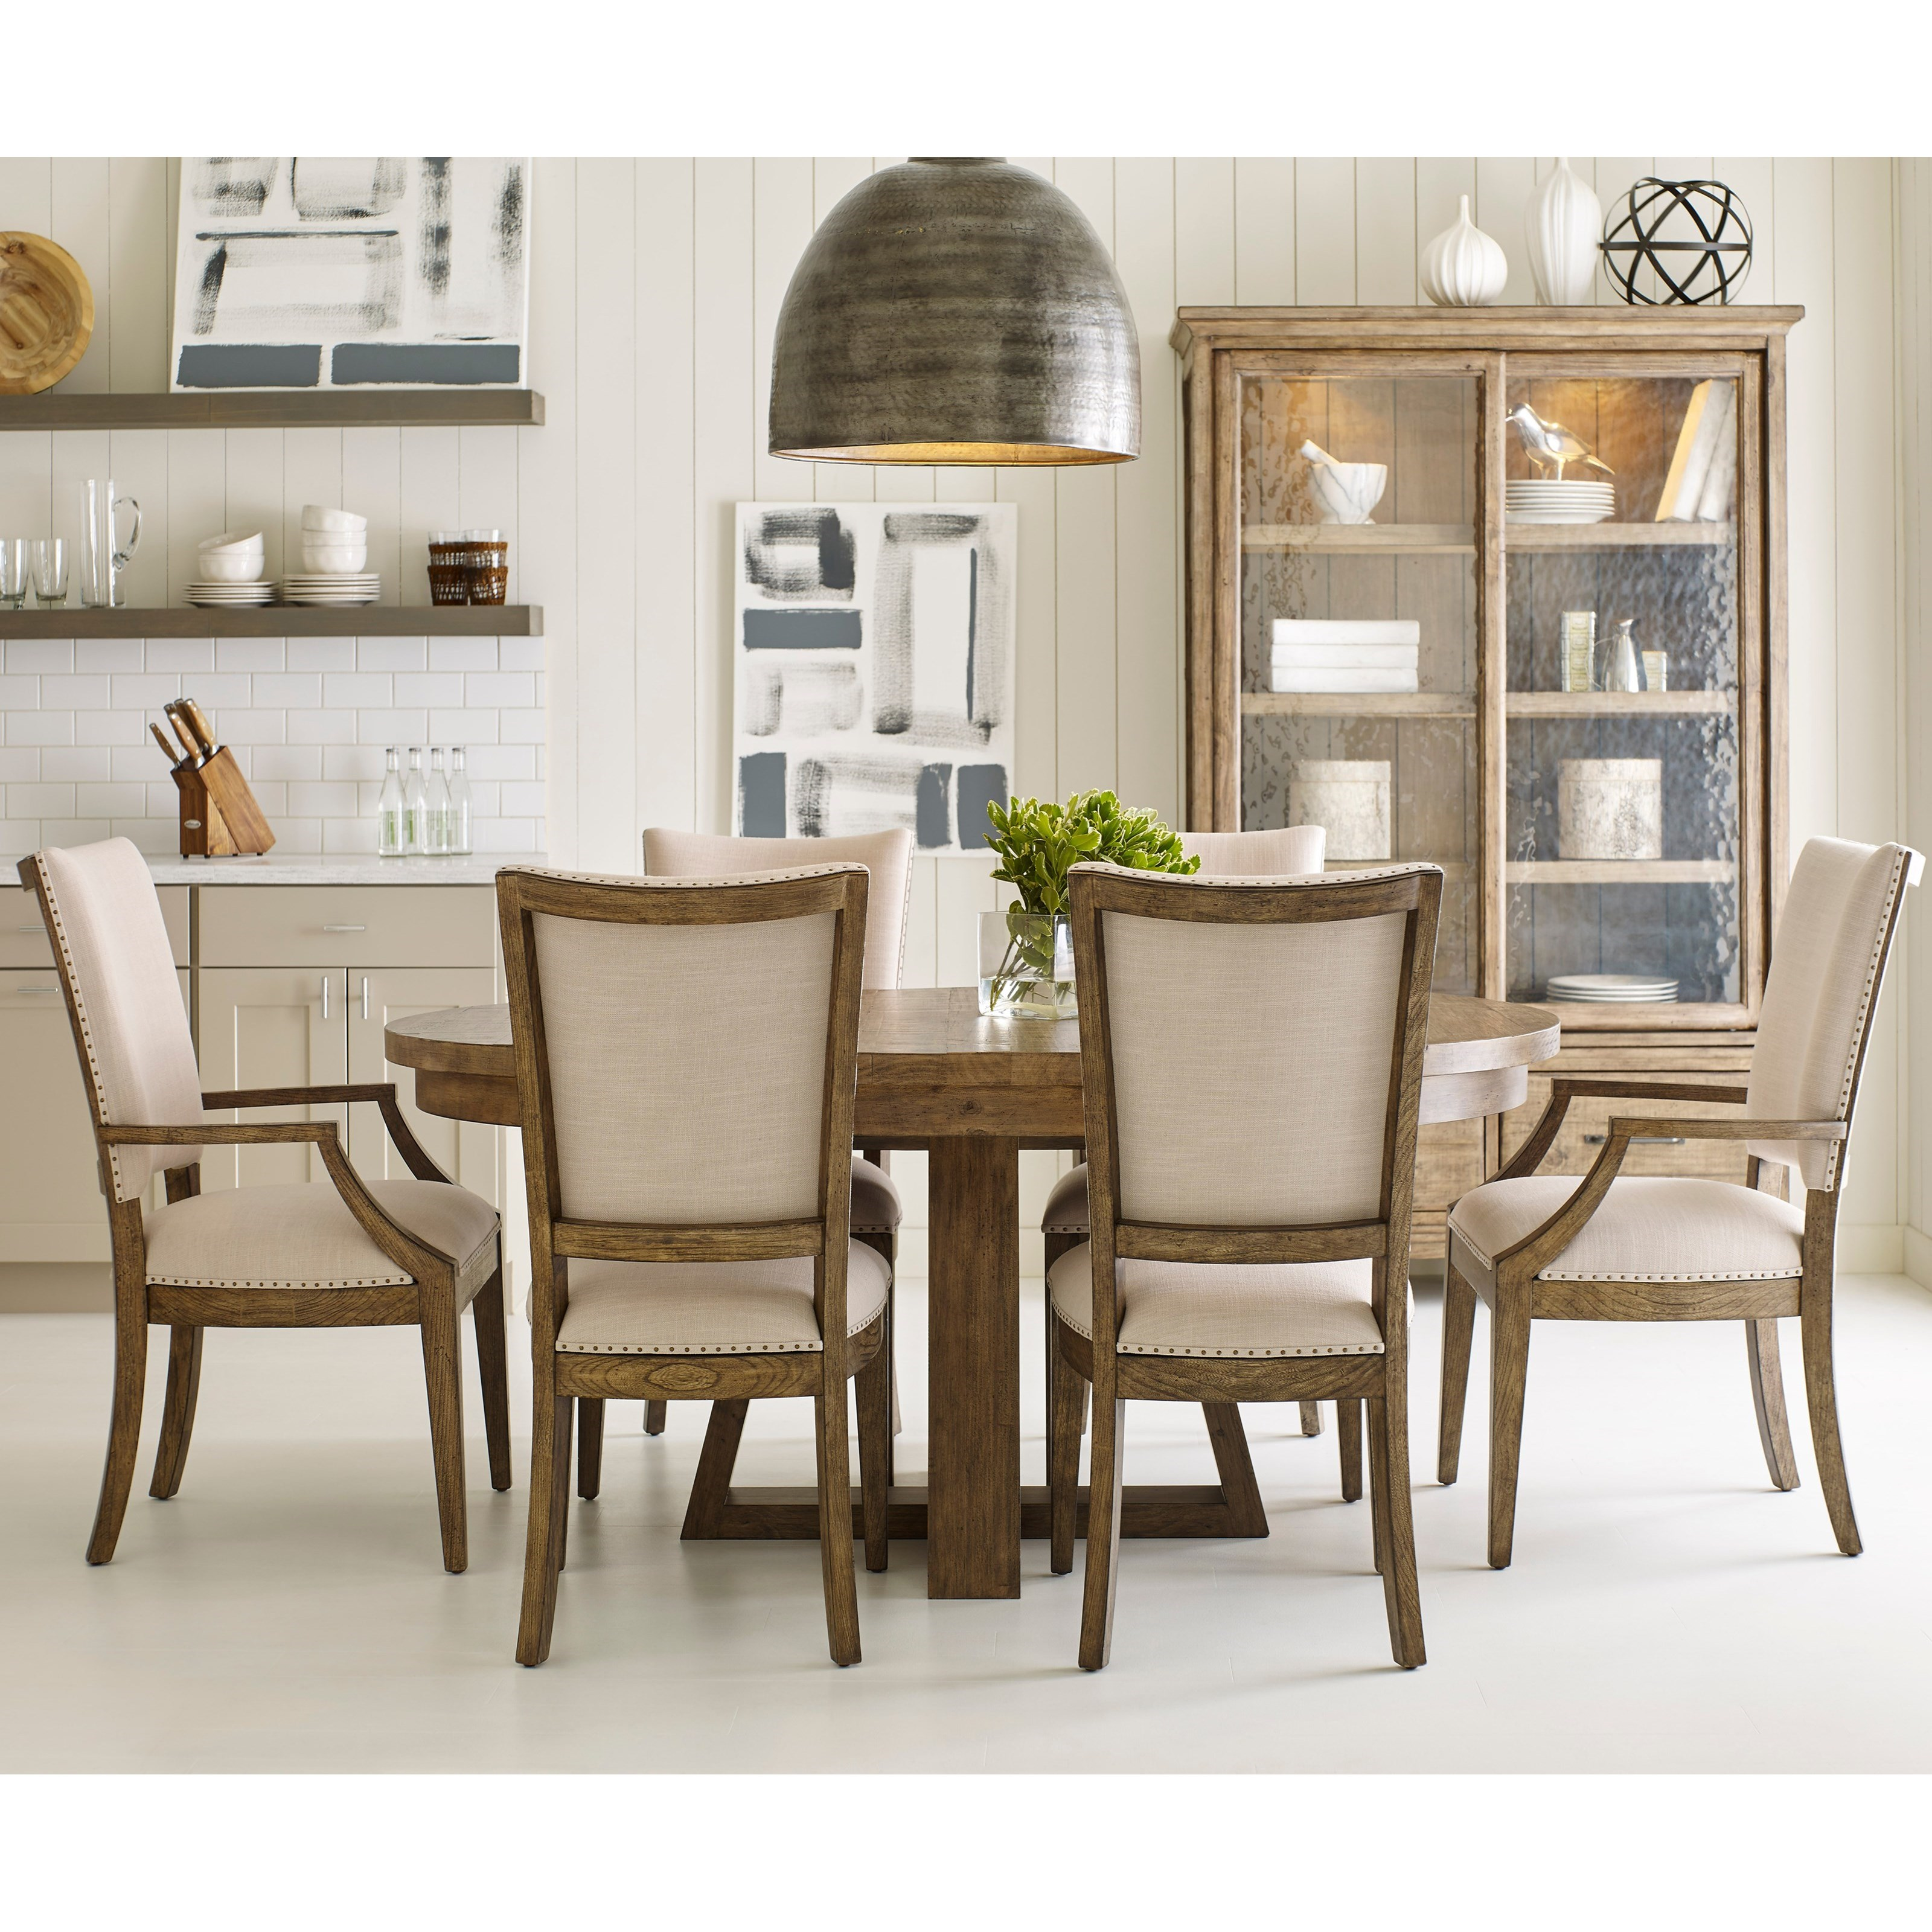 Plank Road 7 Pc Dining Set w/ Button Table at Stoney Creek Furniture